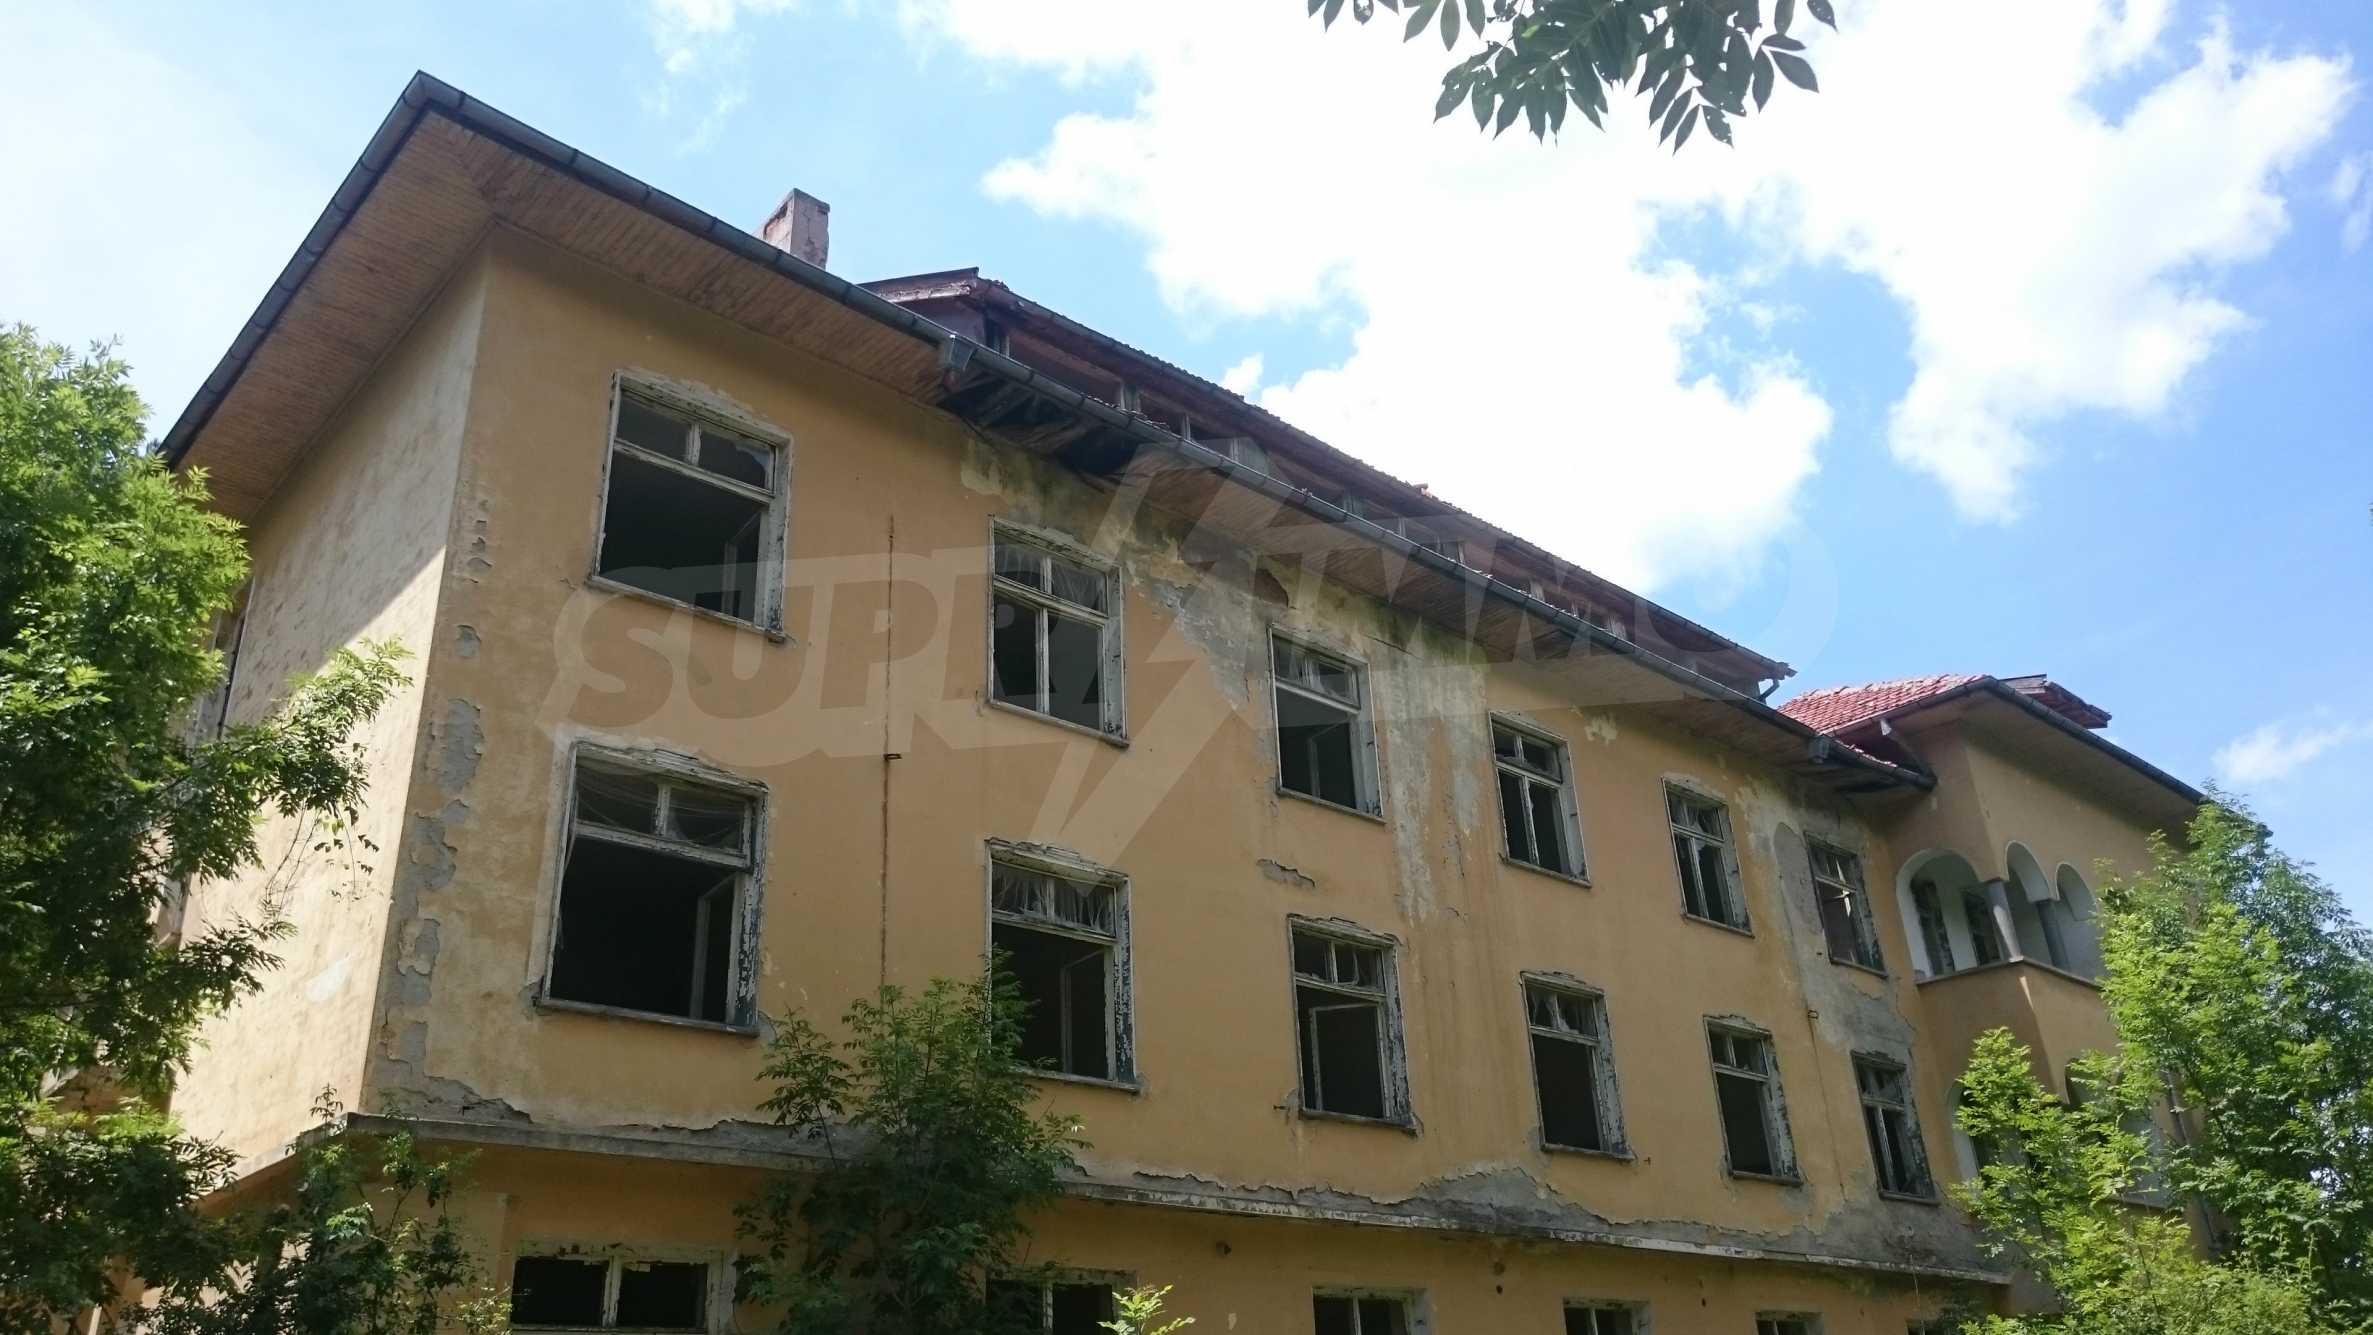 Hotel in need of complete renovation 65